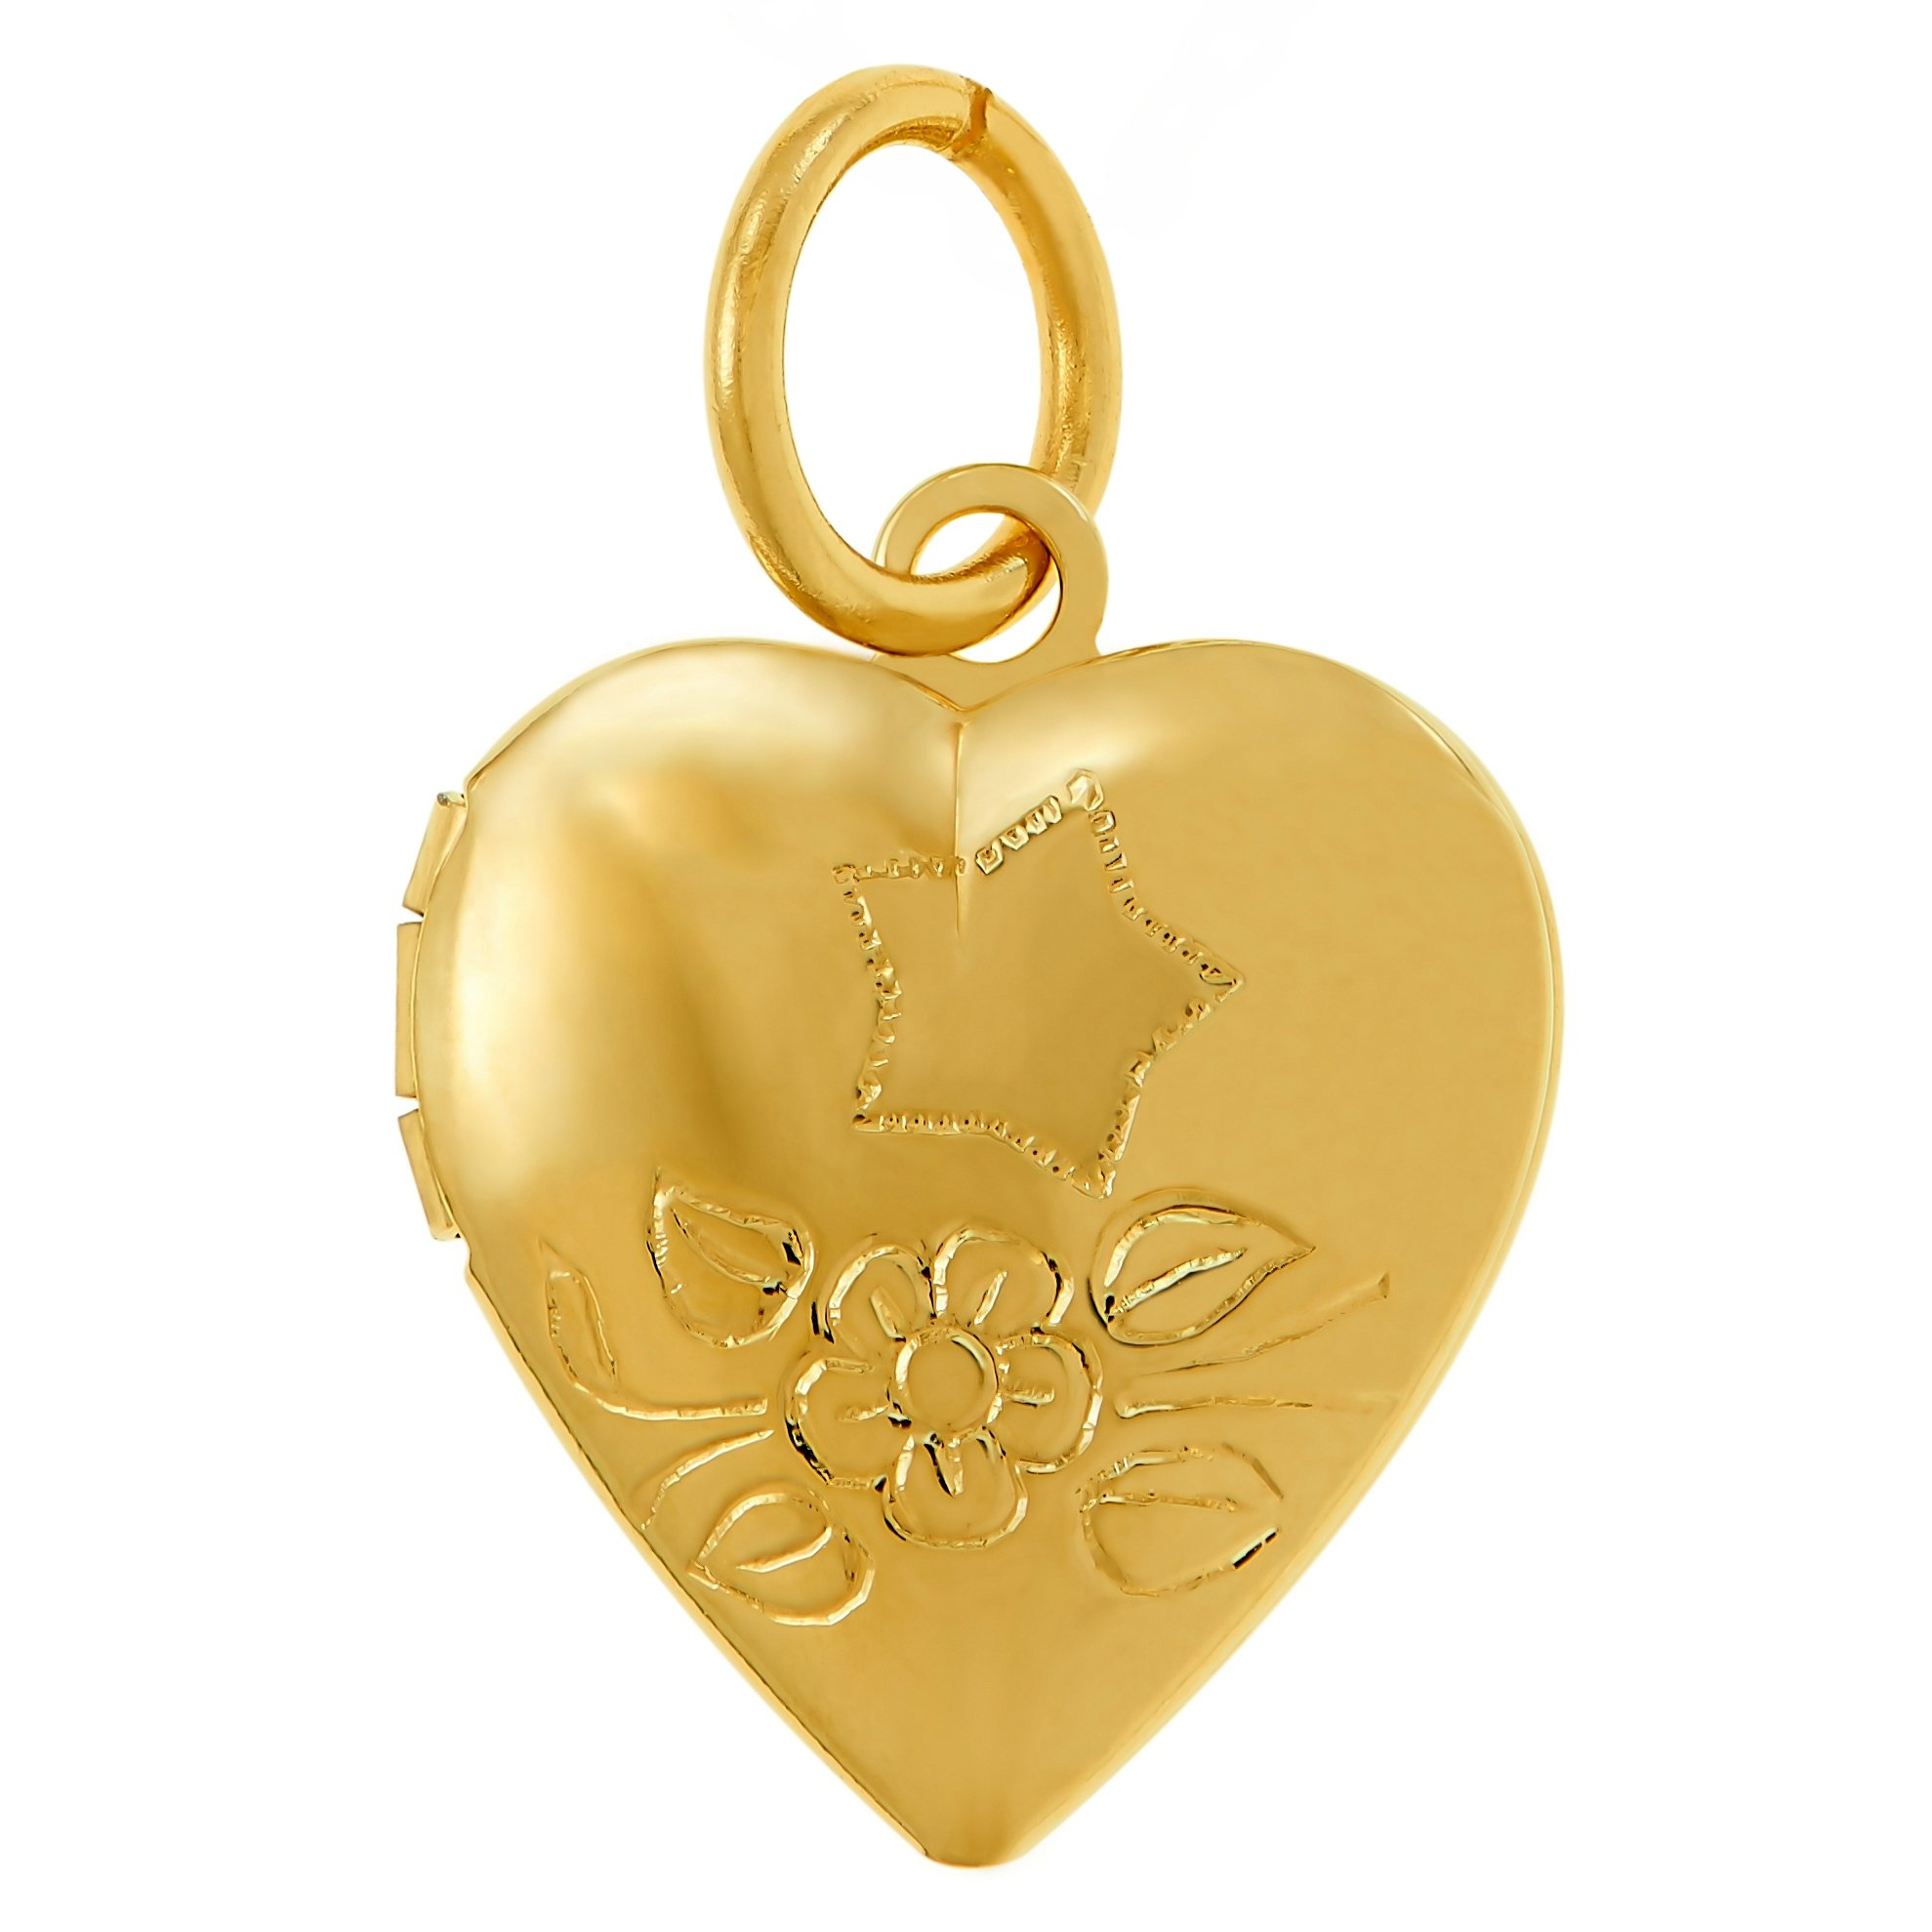 Lifetime Jewelry Tiny Heart Locket, 24K Gold Over Bronze Pendant Necklace, Guaranteed for Life, (Locket Only)